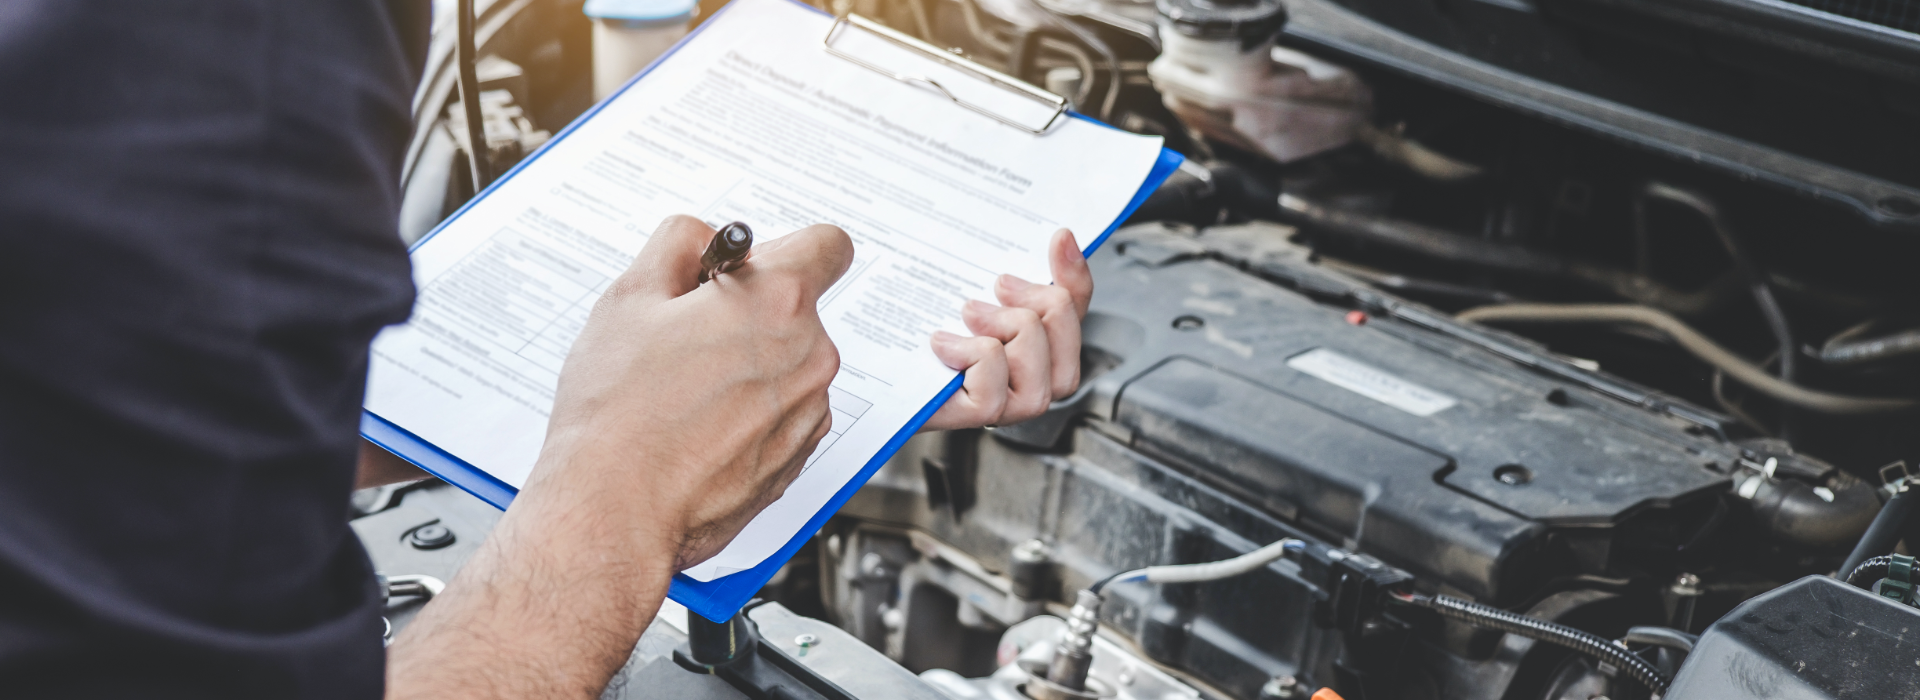 Mechanic inspects car with clipboard to note possible defects.